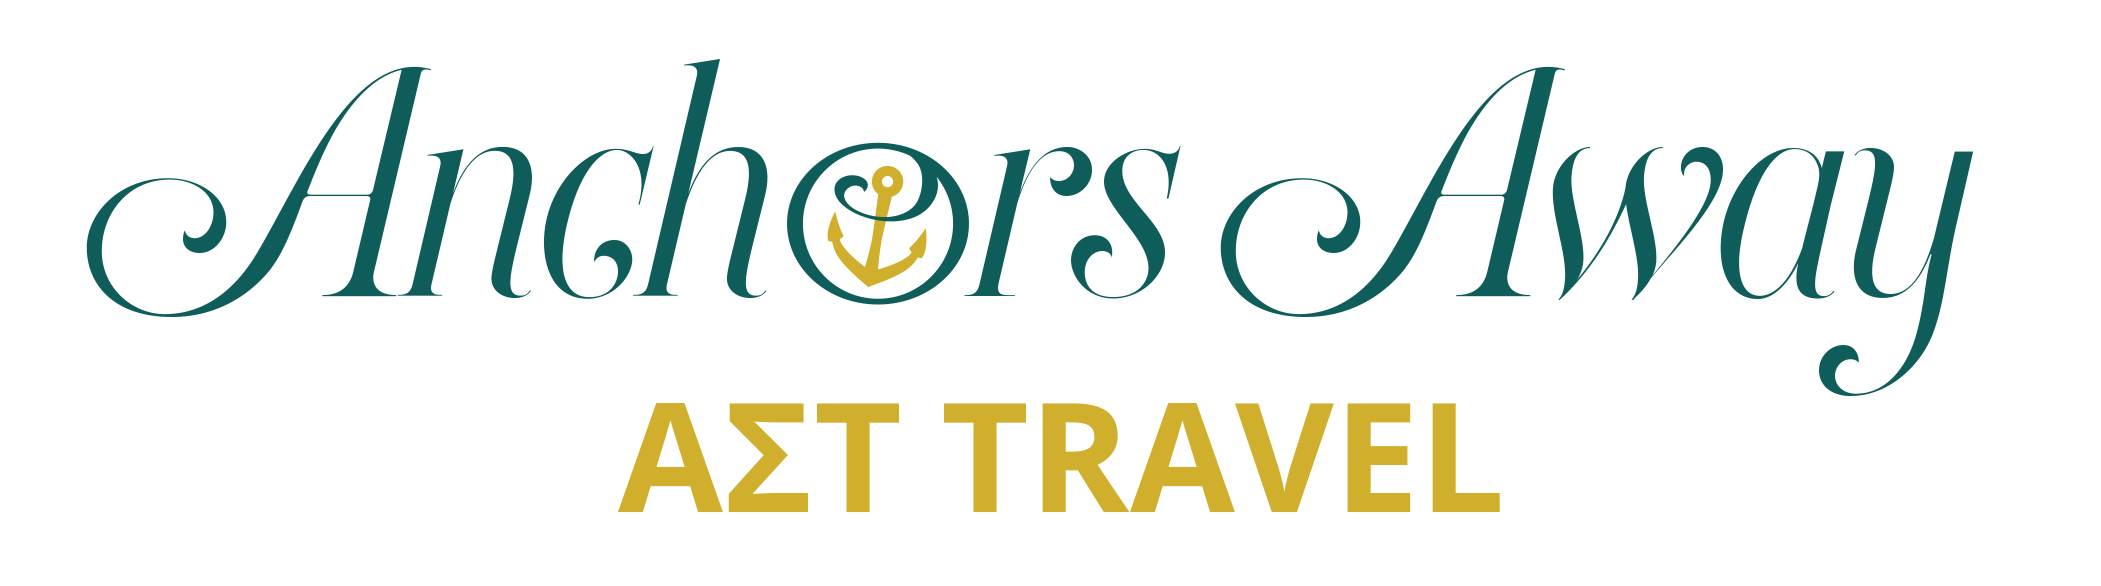 Anchors Away Travel Logo_Samples_4